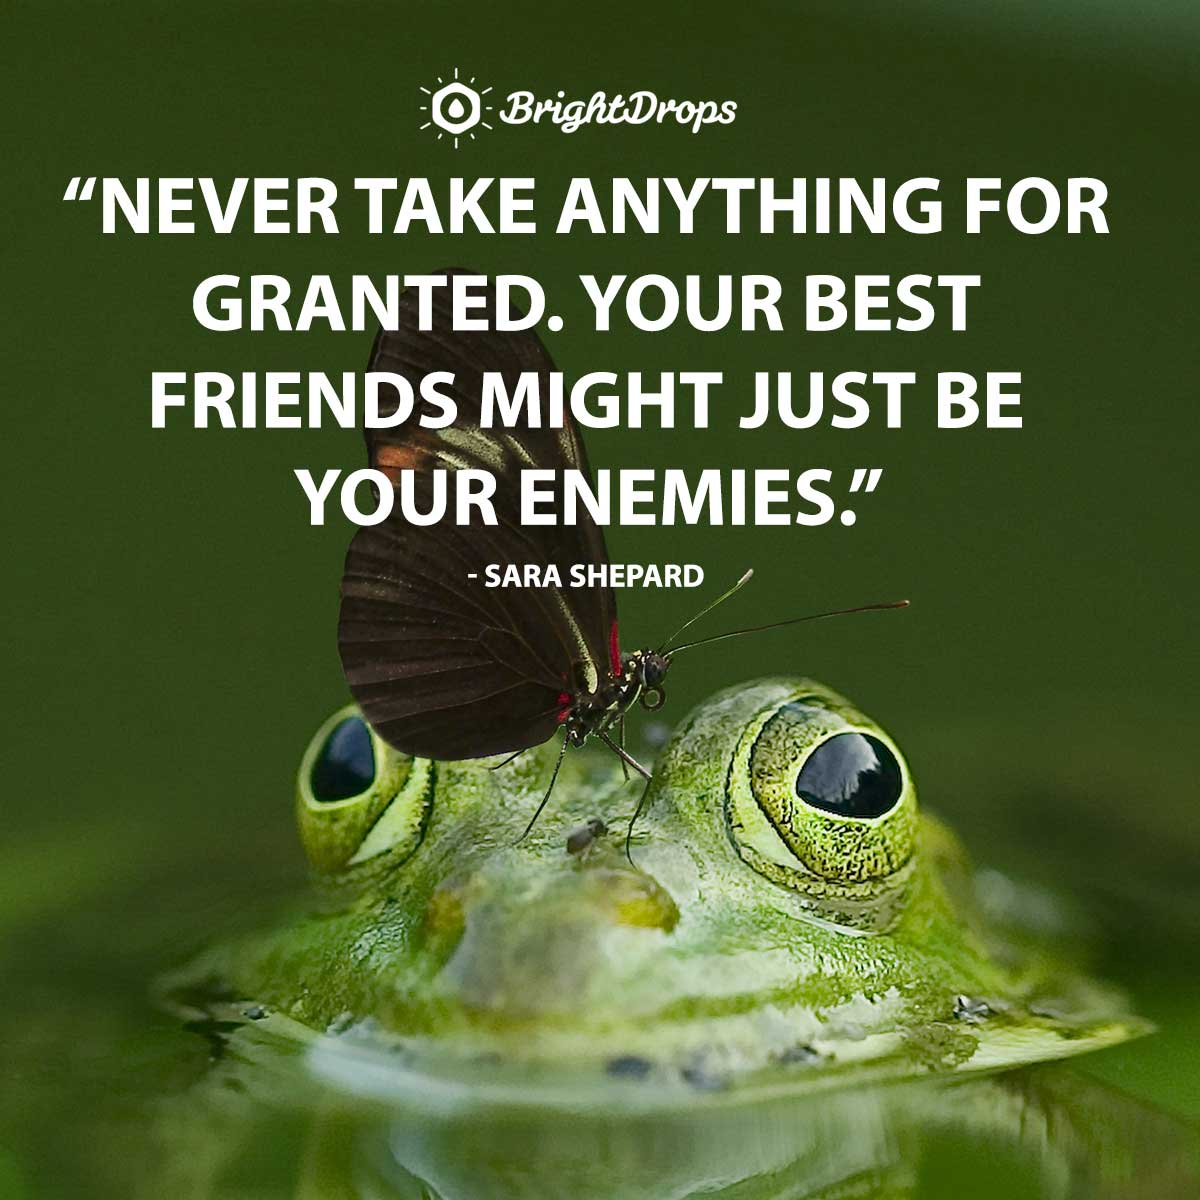 Never take anything for granted. Your best friends might just be your enemies. - Sara Shepard